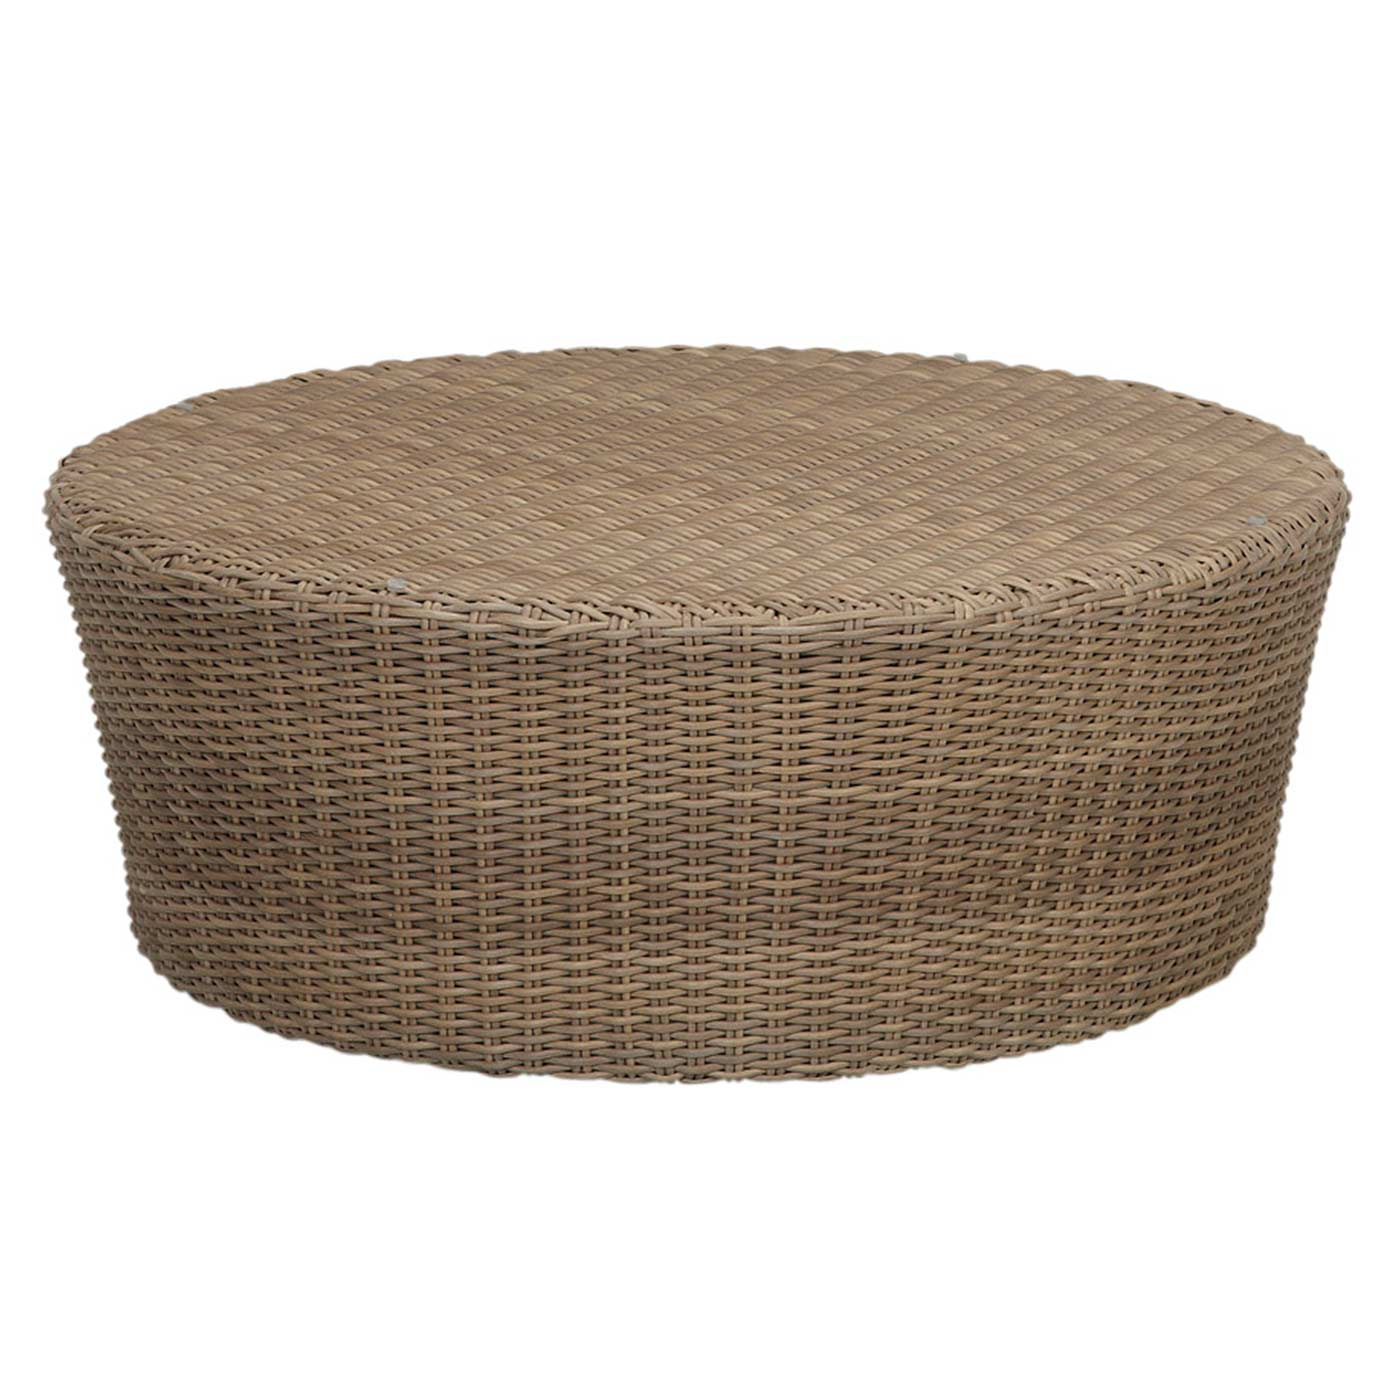 Sunset West Coronado Round Coffee Table in Driftwood FREE SHIPPING for Driftwood Outdoor Furniture  150ifm